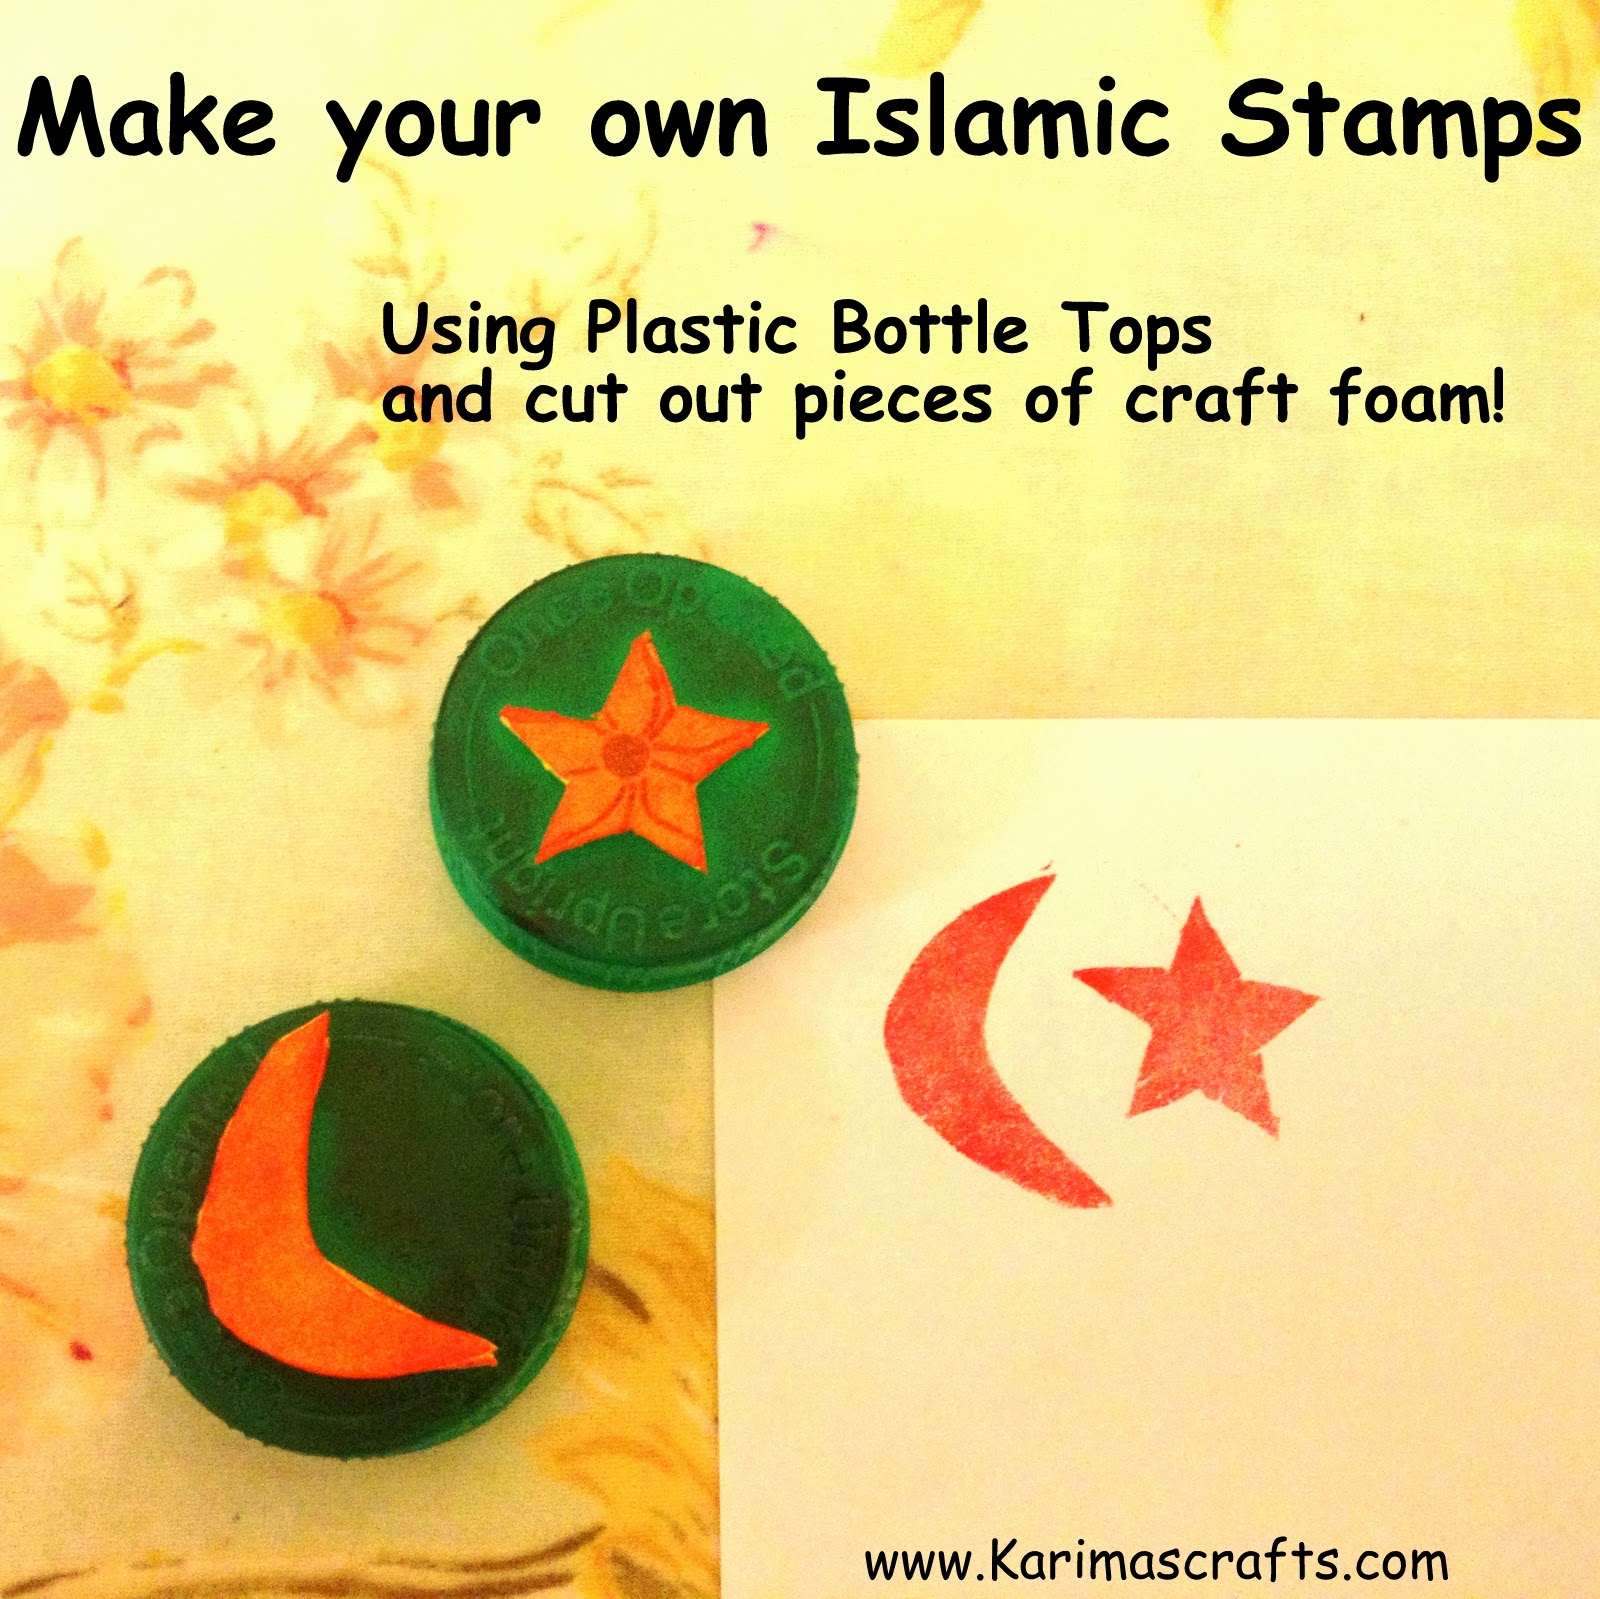 ramadan crafts extra Muslim Islamic stamps